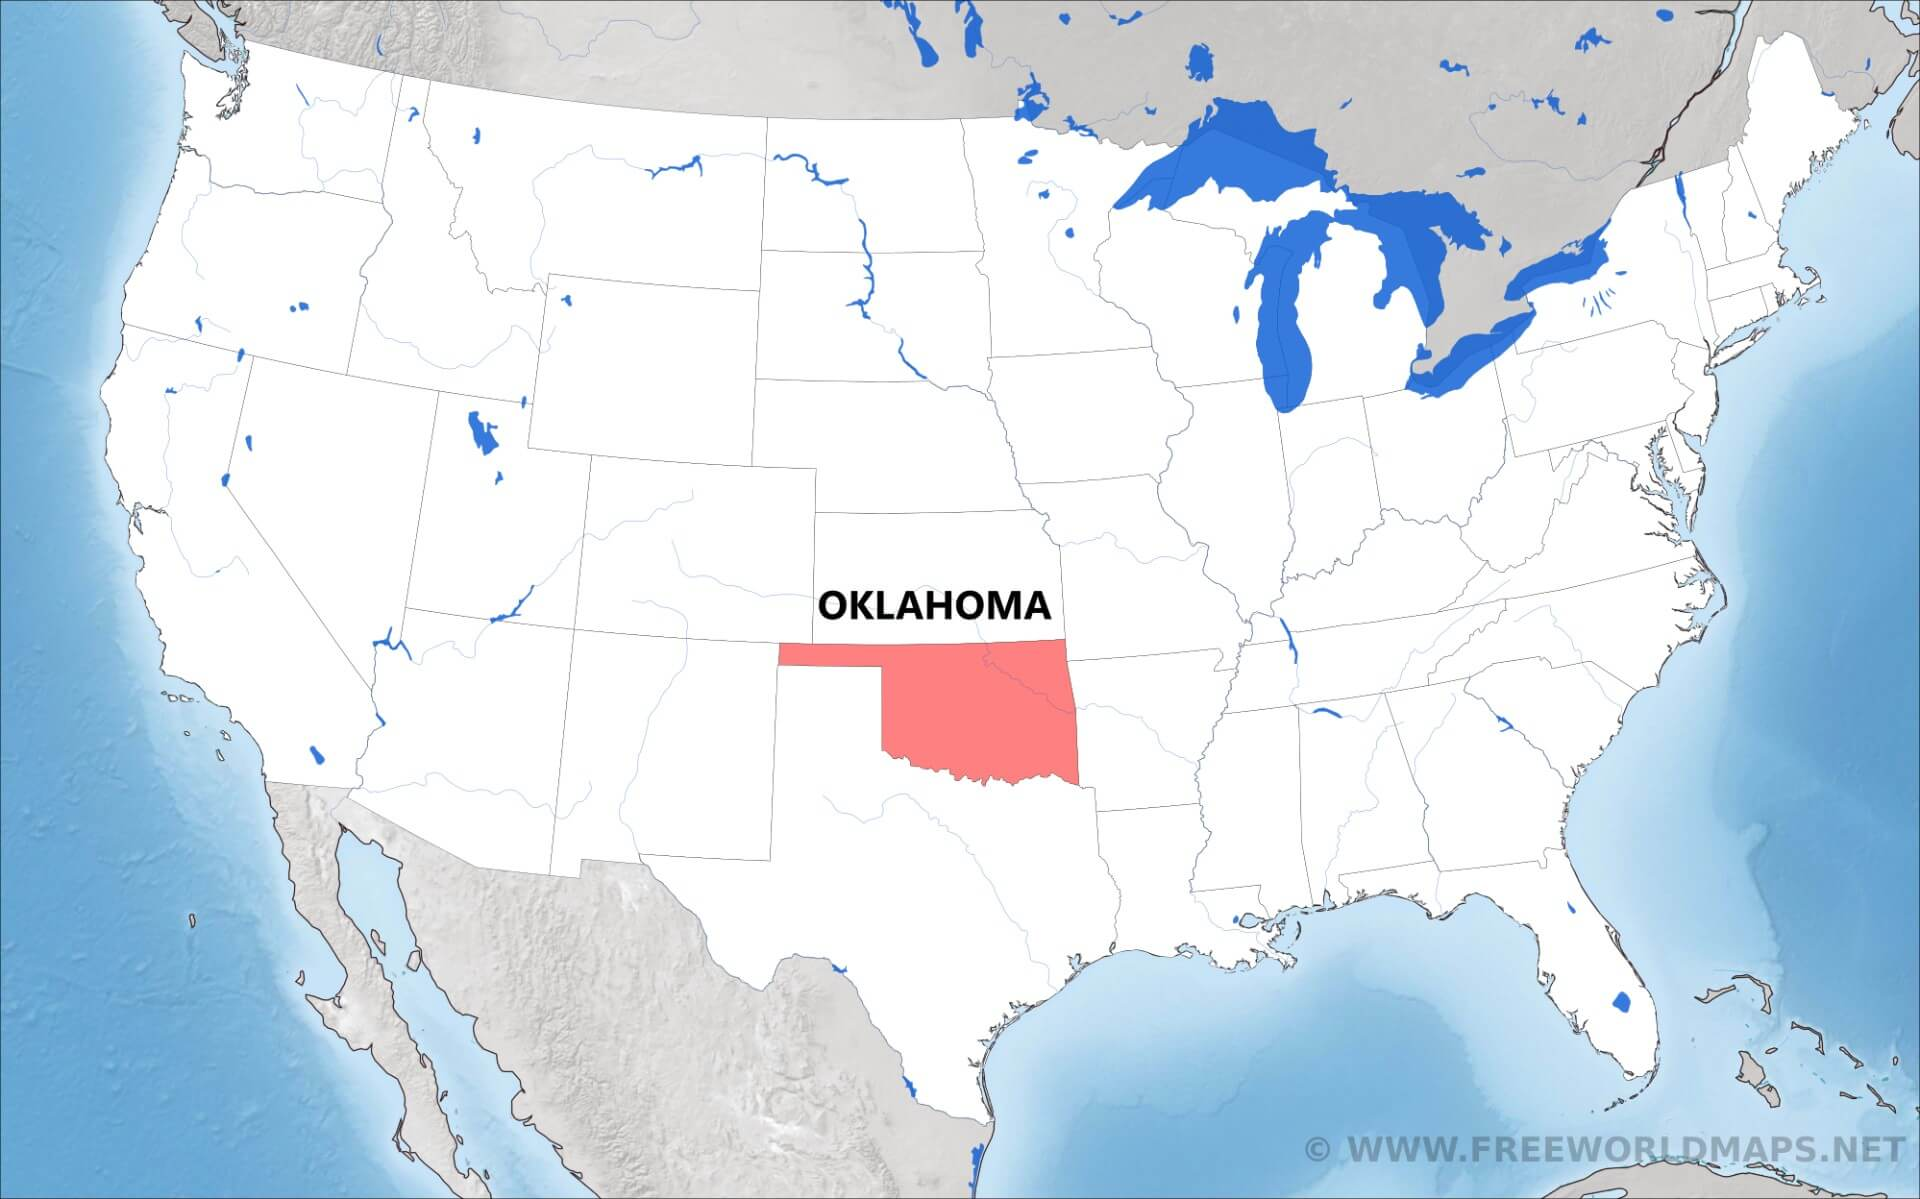 Where is Oklahoma located on the map?